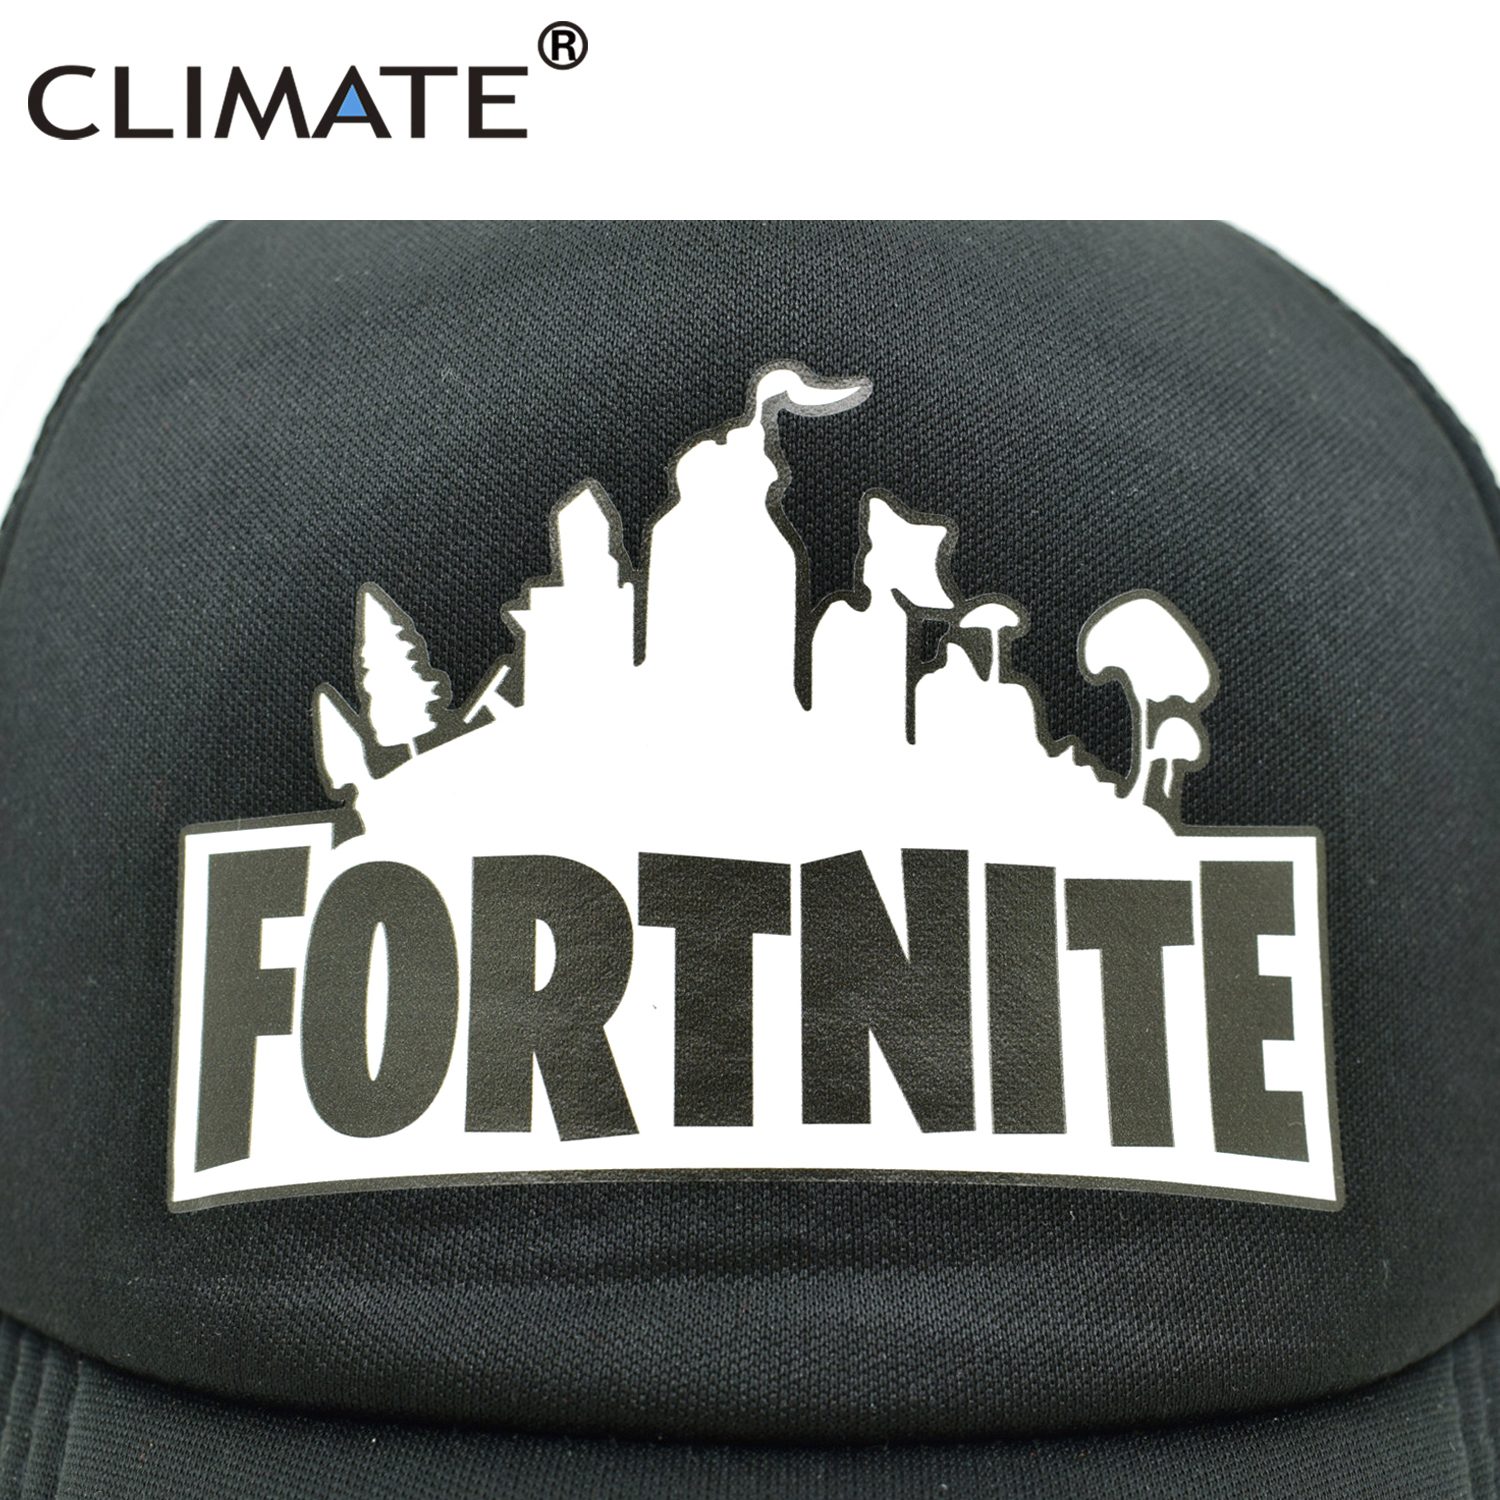 CLIMATE Fortnite Trucker Cap Hat Hot New Game Fortnite Fans Cool Mesh - Kläder tillbehör - Foto 2